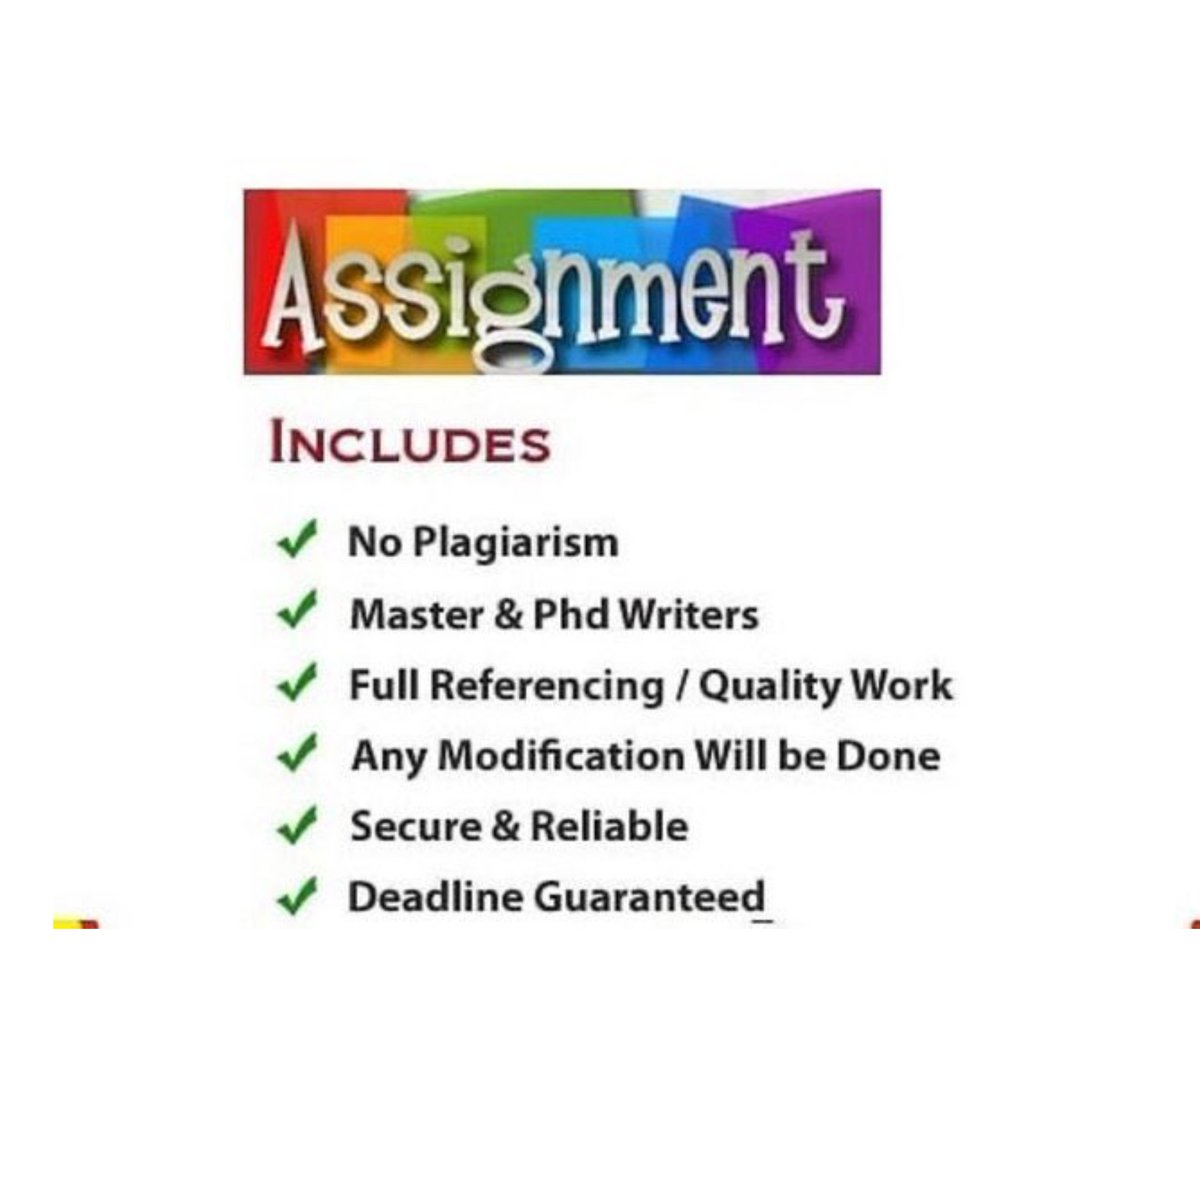 Get your assignments handled by the real expers #Statistics #Literature  #Nursing #Biology    #Law  #Physiology #Javascript  #Business #Essaydue #Termpaper #Calculus #onlineclasses  #dissertation  #astronomy  #assignments  #Homework  #essaypay  #essayhelp . +13392127283 whatsapp